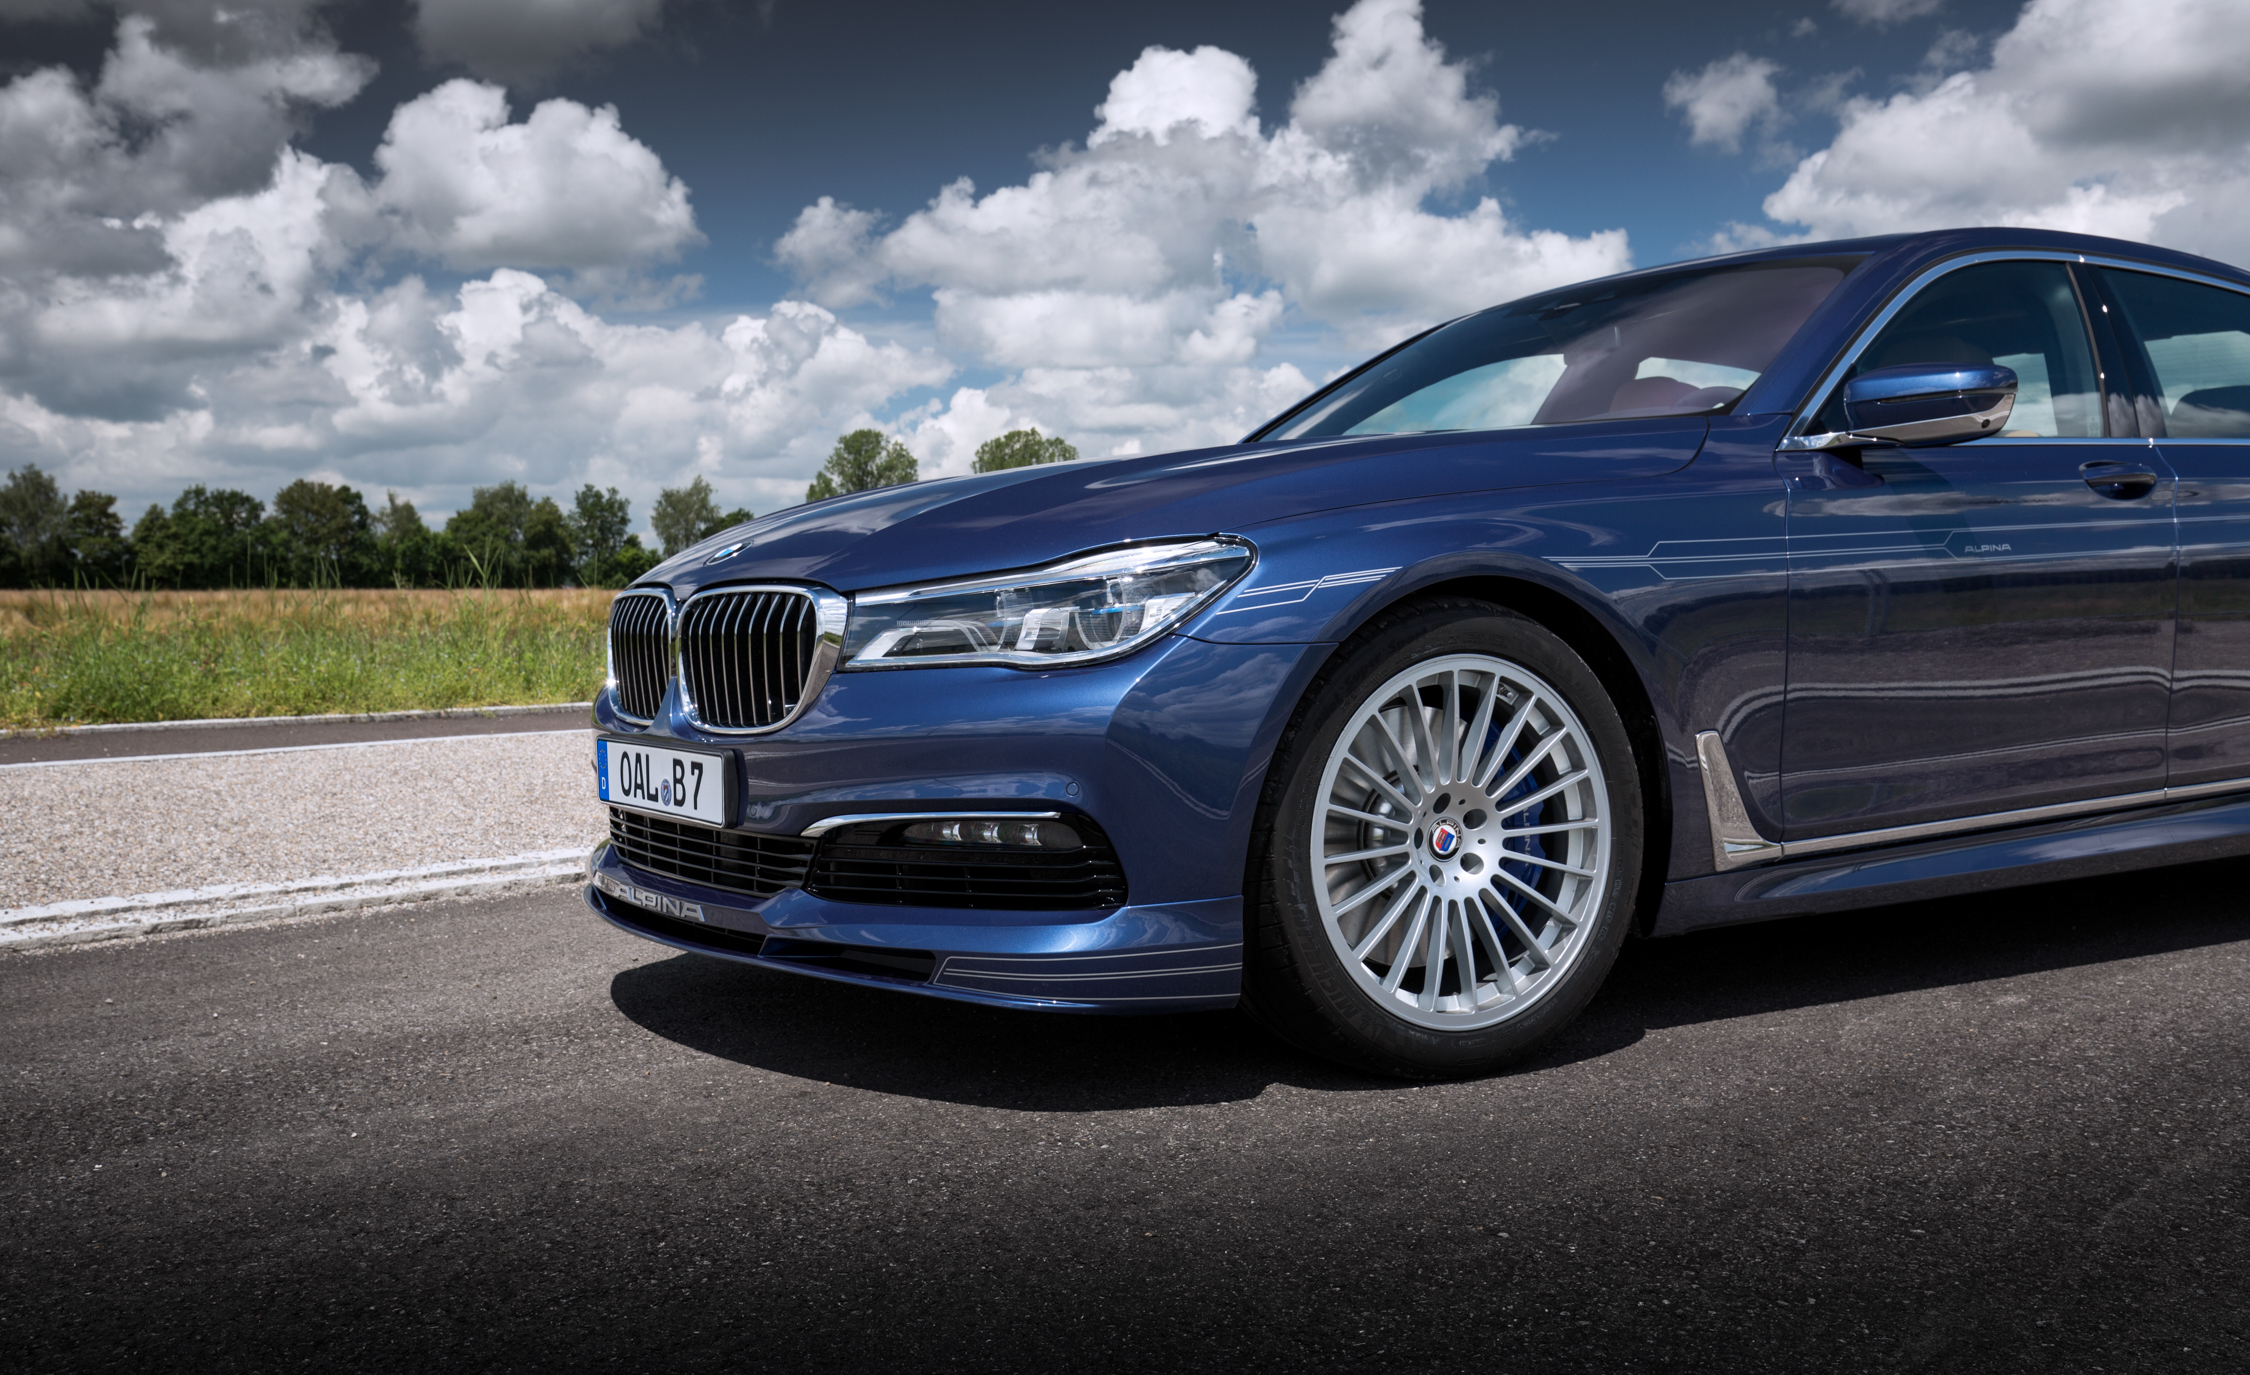 2017 BMW Alpina B7 Exterior View Front Bumper (View 35 of 45)